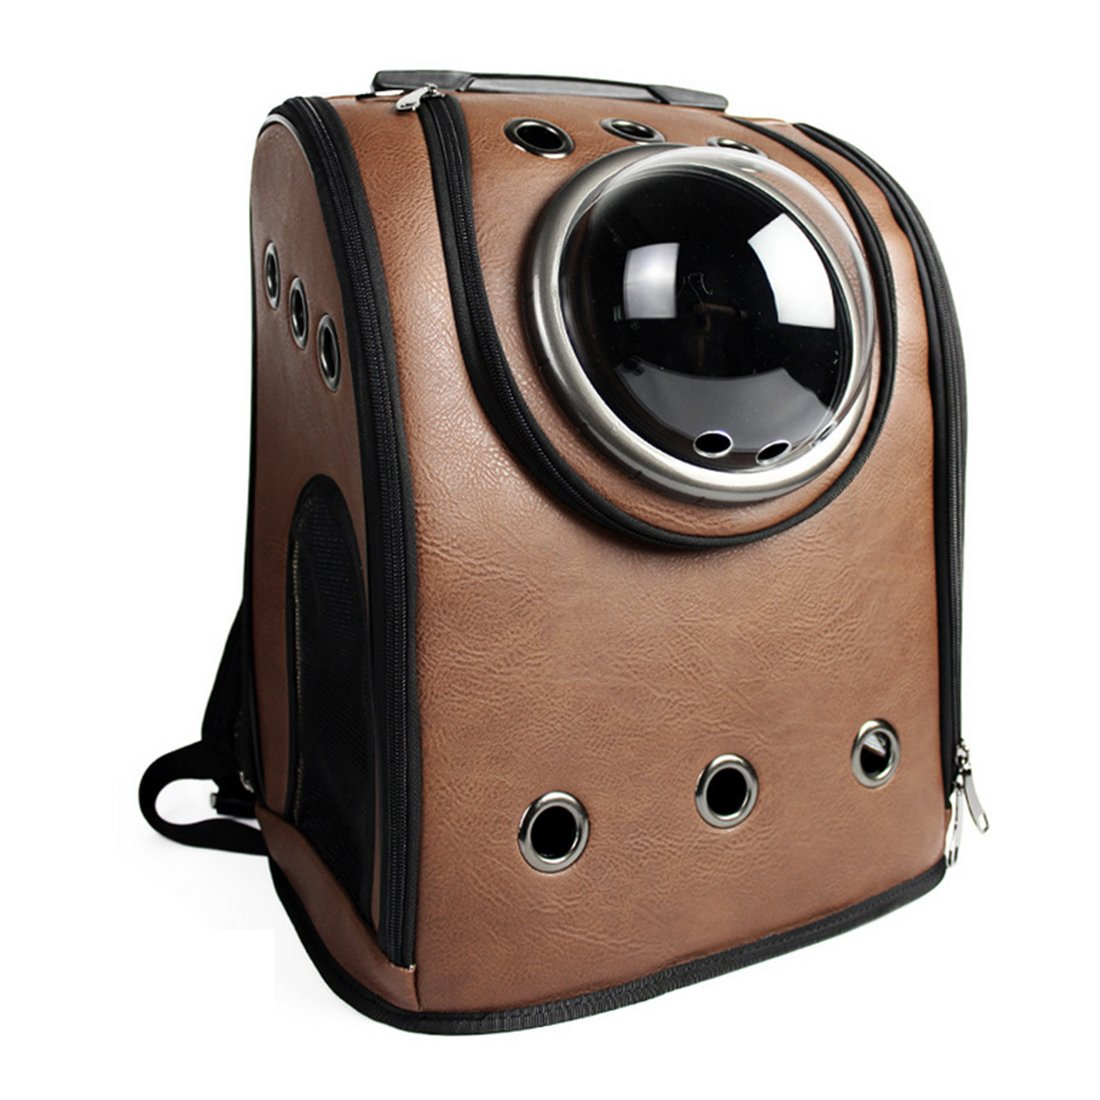 Petforu Pet Carrier Backpack, Space Capsule Dog Cat Small Animals Travel Bag – Coffee